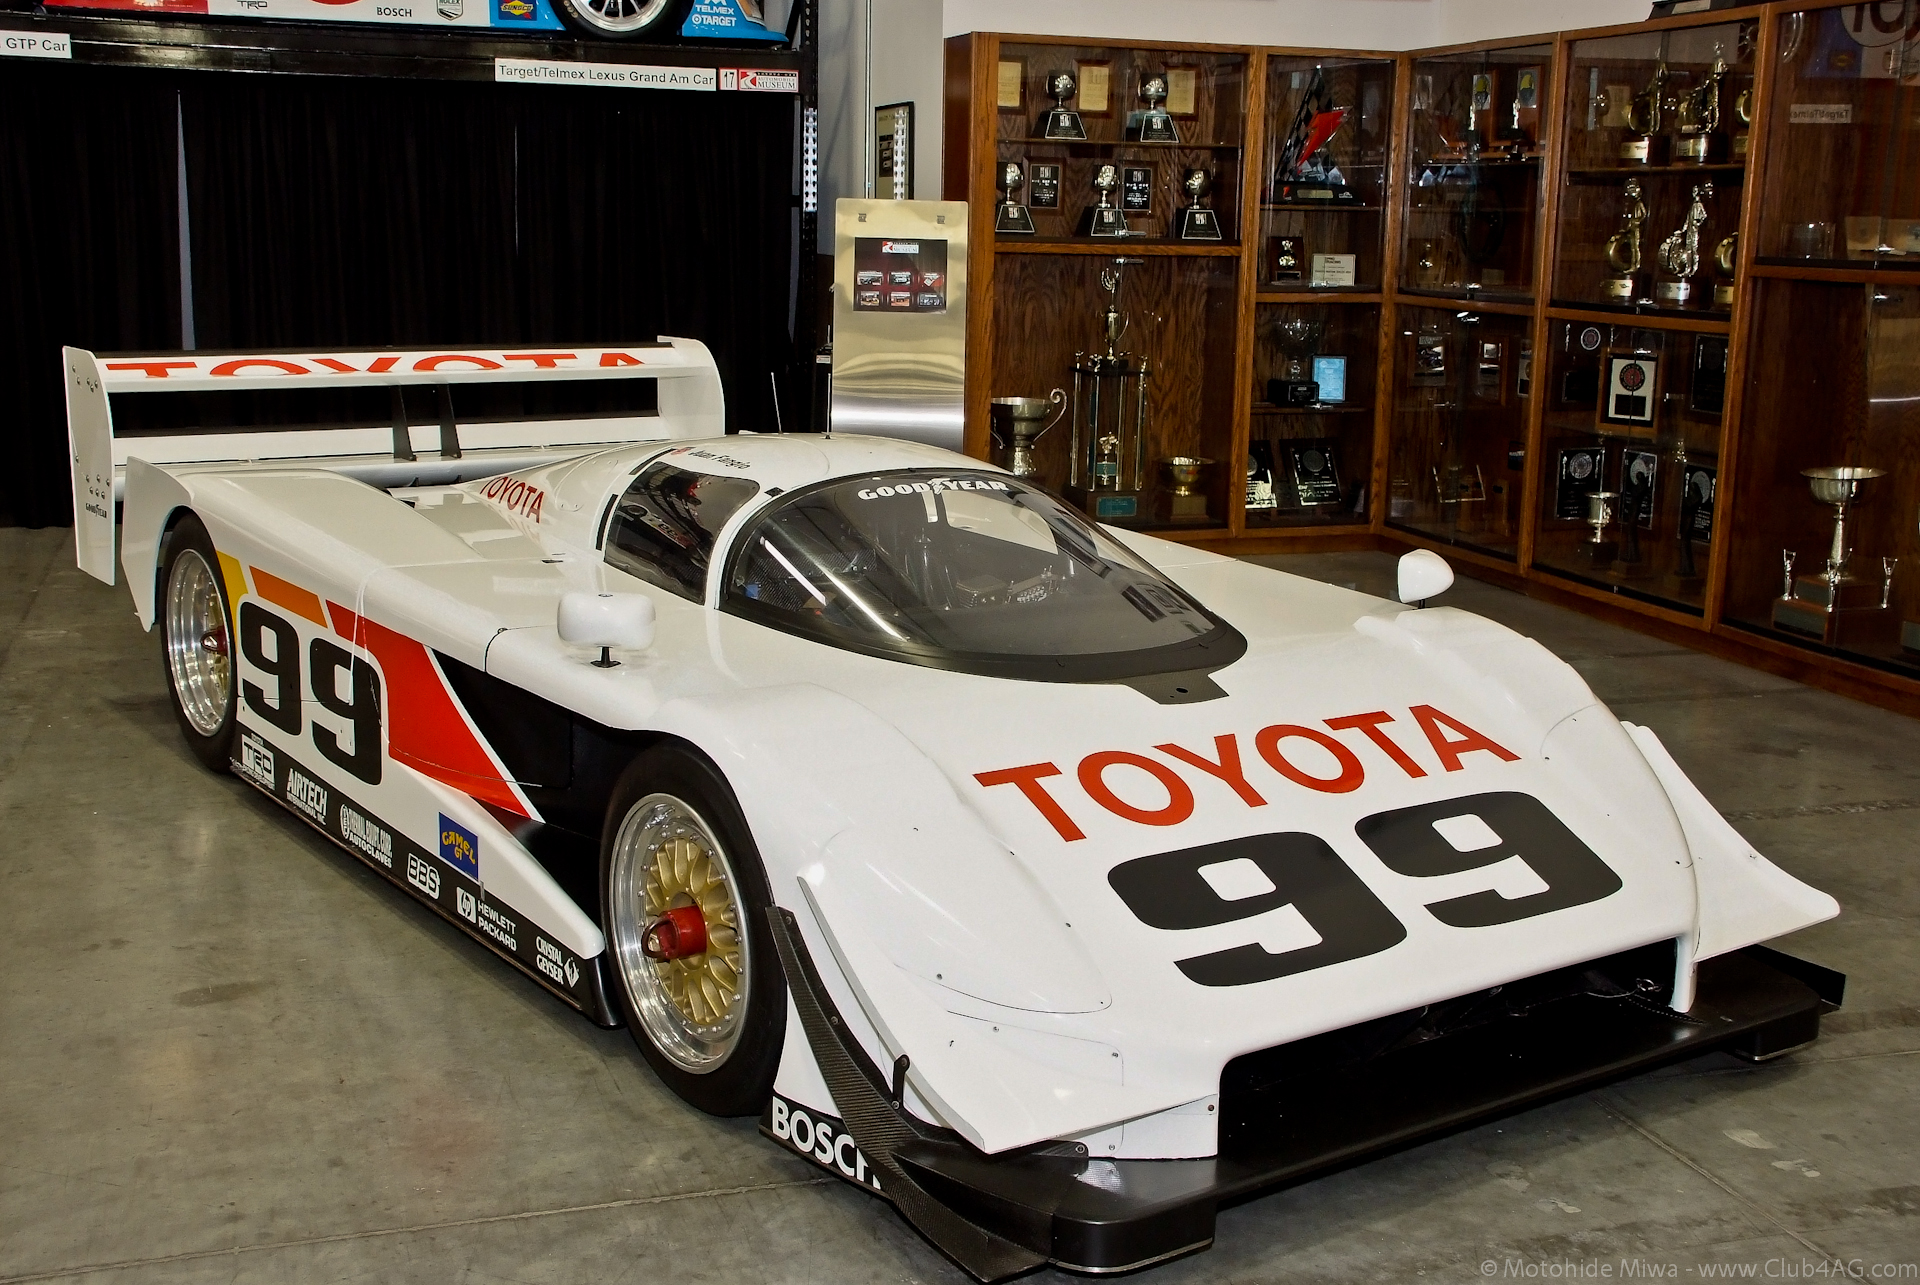 2011_11_26_Toyota_HQ-20-37_-_Flickr_-_Moto%40Club4AG.jpg